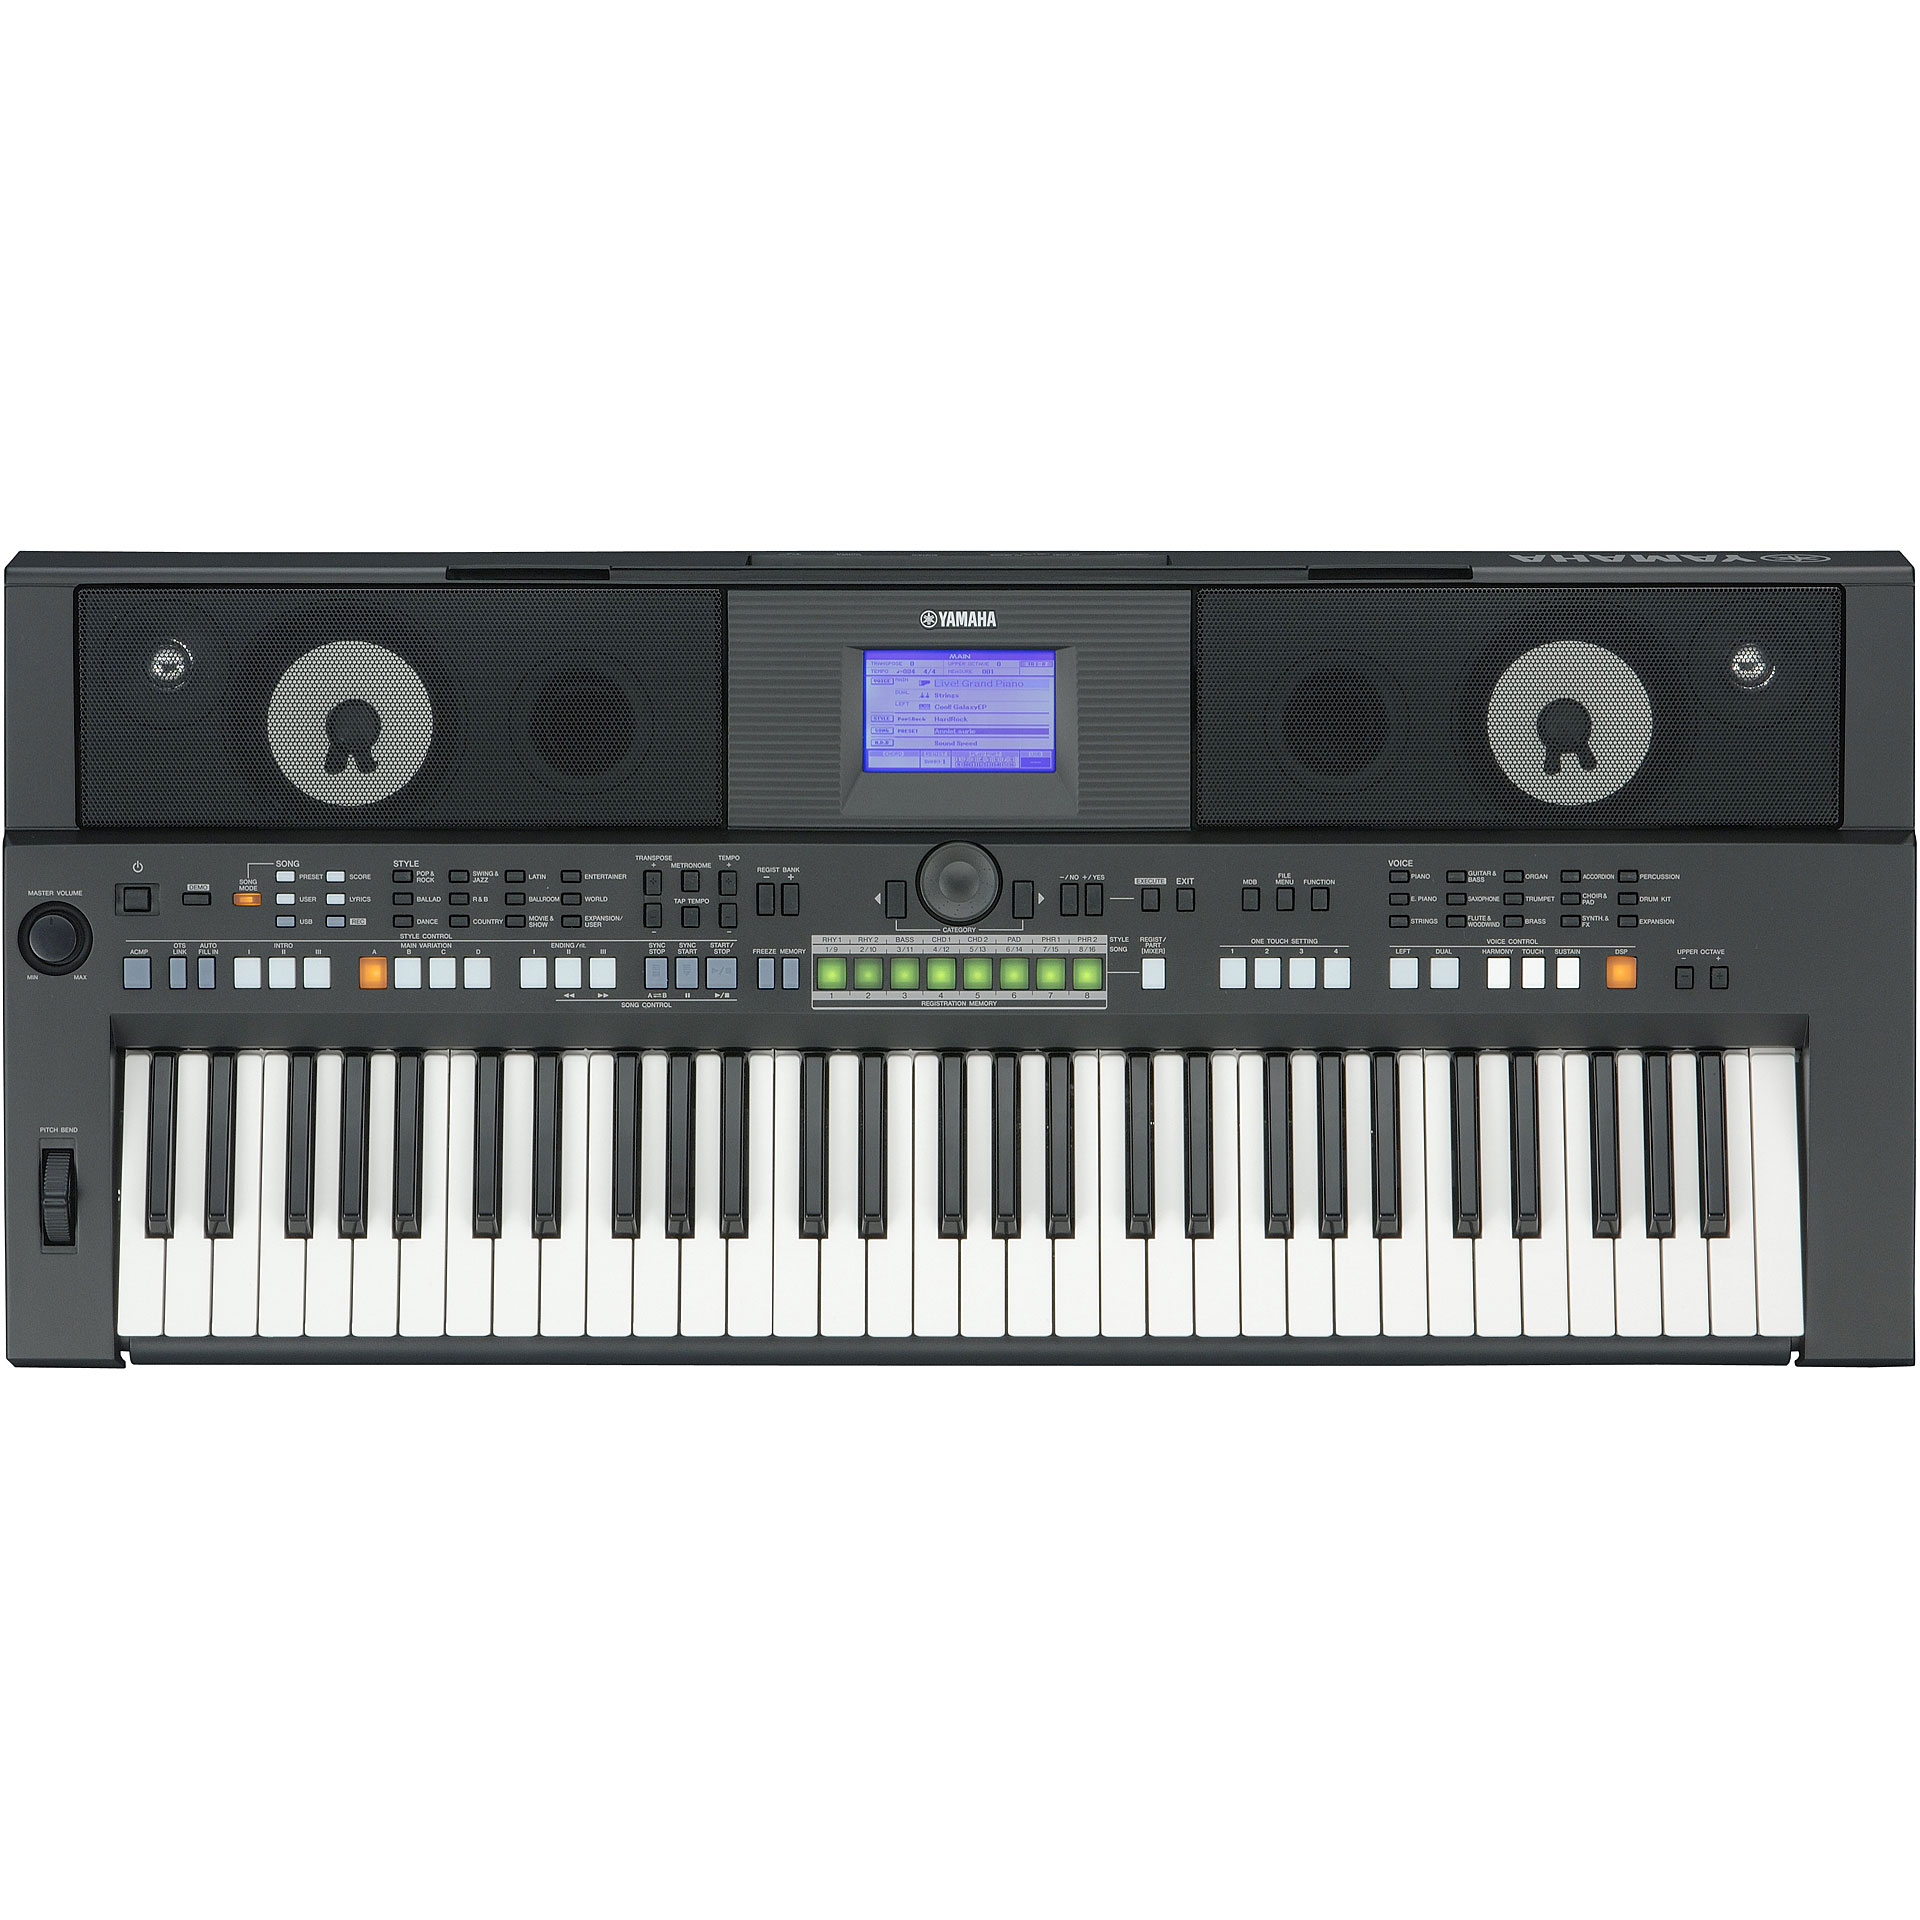 yamaha psr s650 keyboard. Black Bedroom Furniture Sets. Home Design Ideas